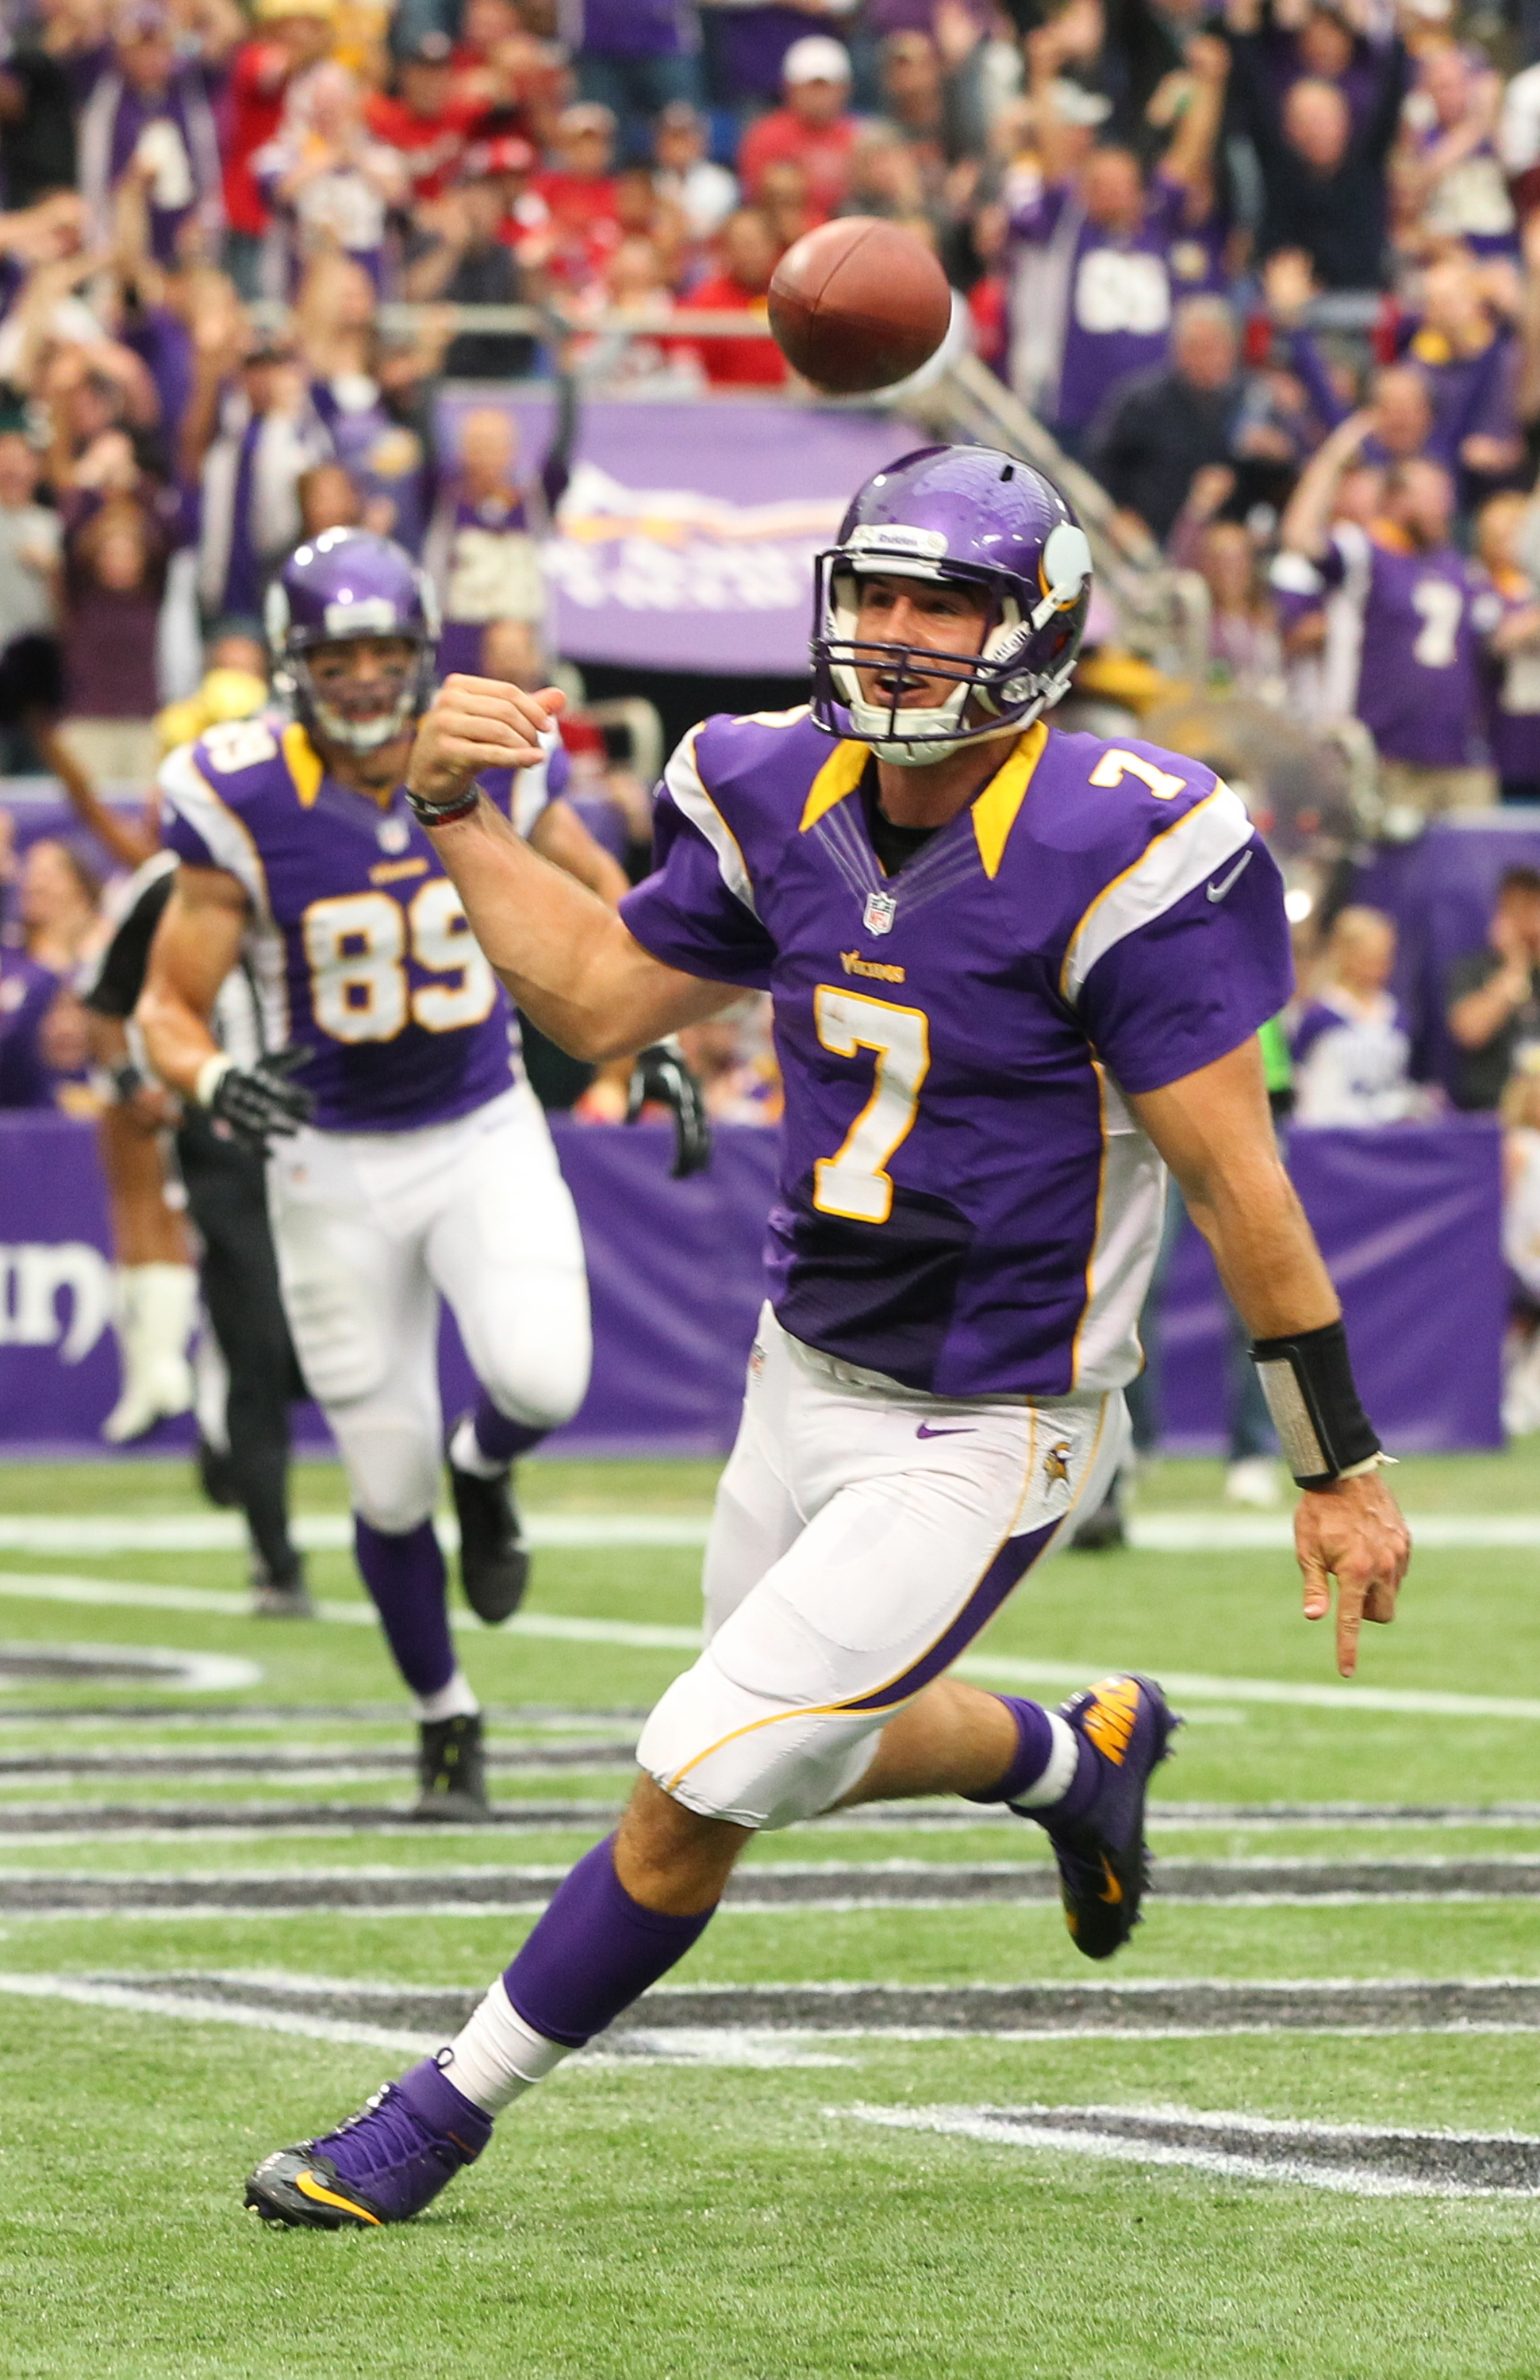 Getty Images    Vikings quarterback Christian Ponder celebrates a touchdown during the second quarter against the San Francisco 49ers at the Hubert H. Humphrey Metrodome.